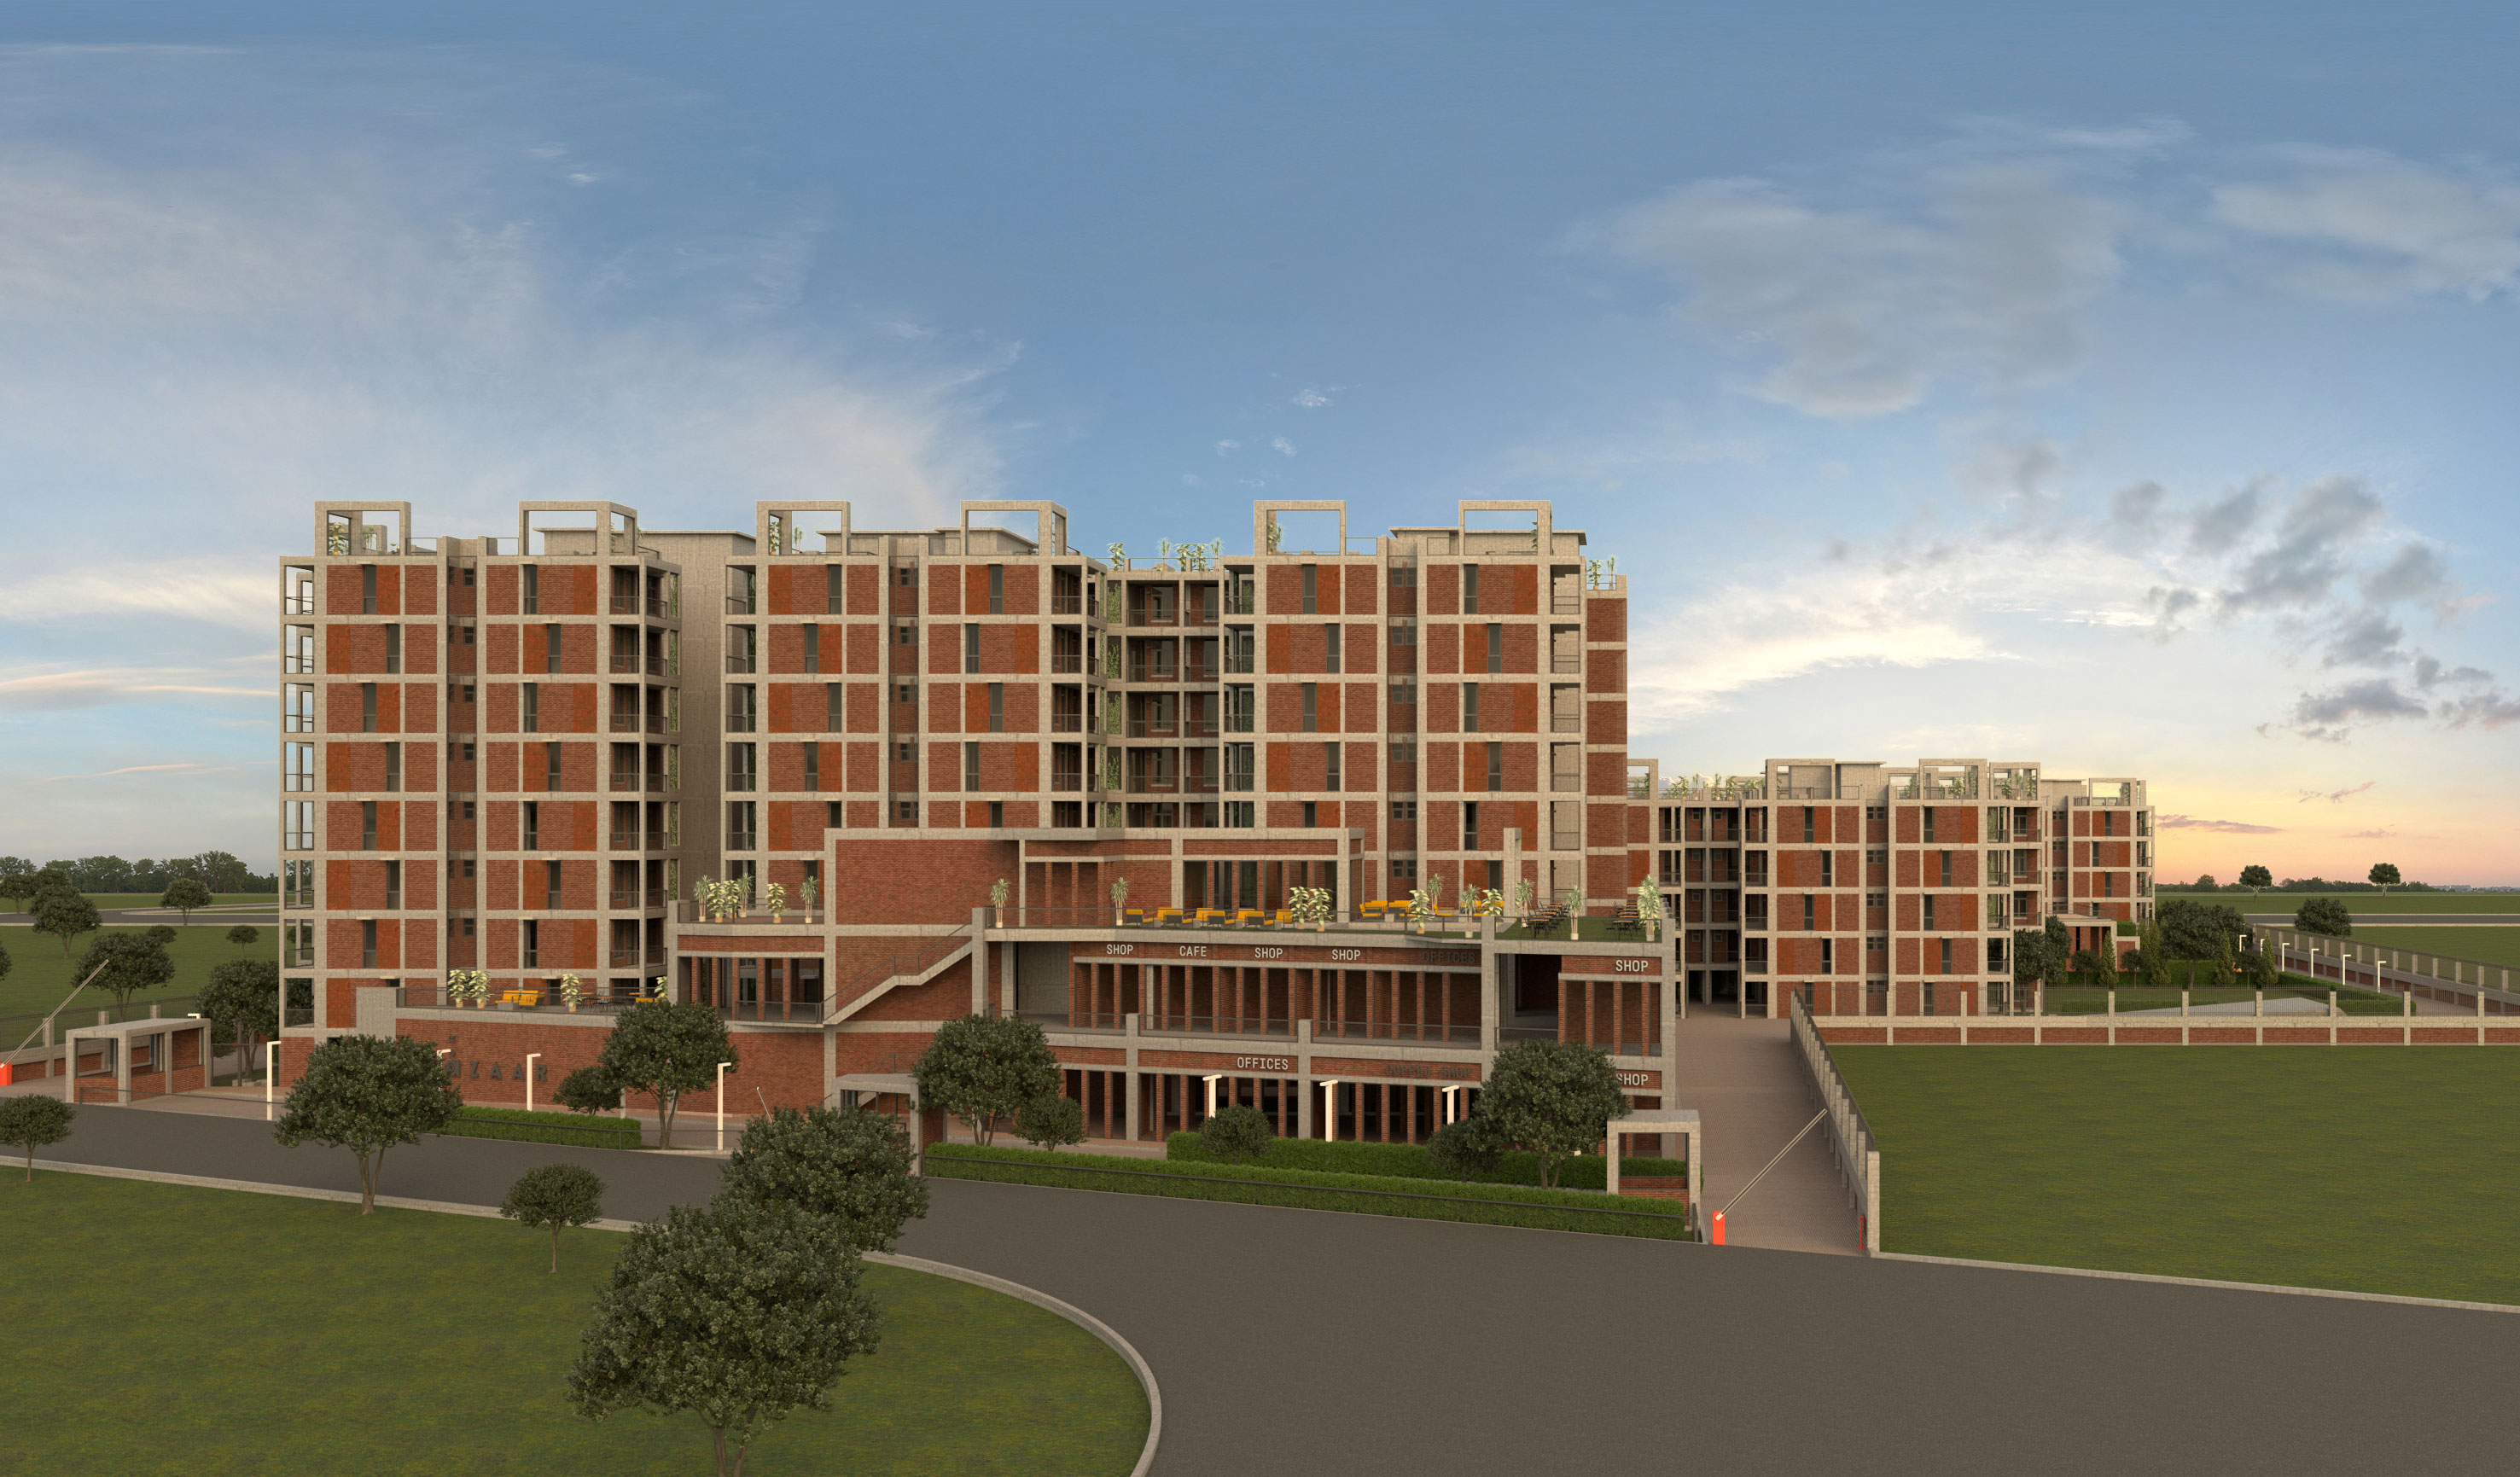 Arete Our Home 3 in Sector 6, Sohna - Gurgaon Road